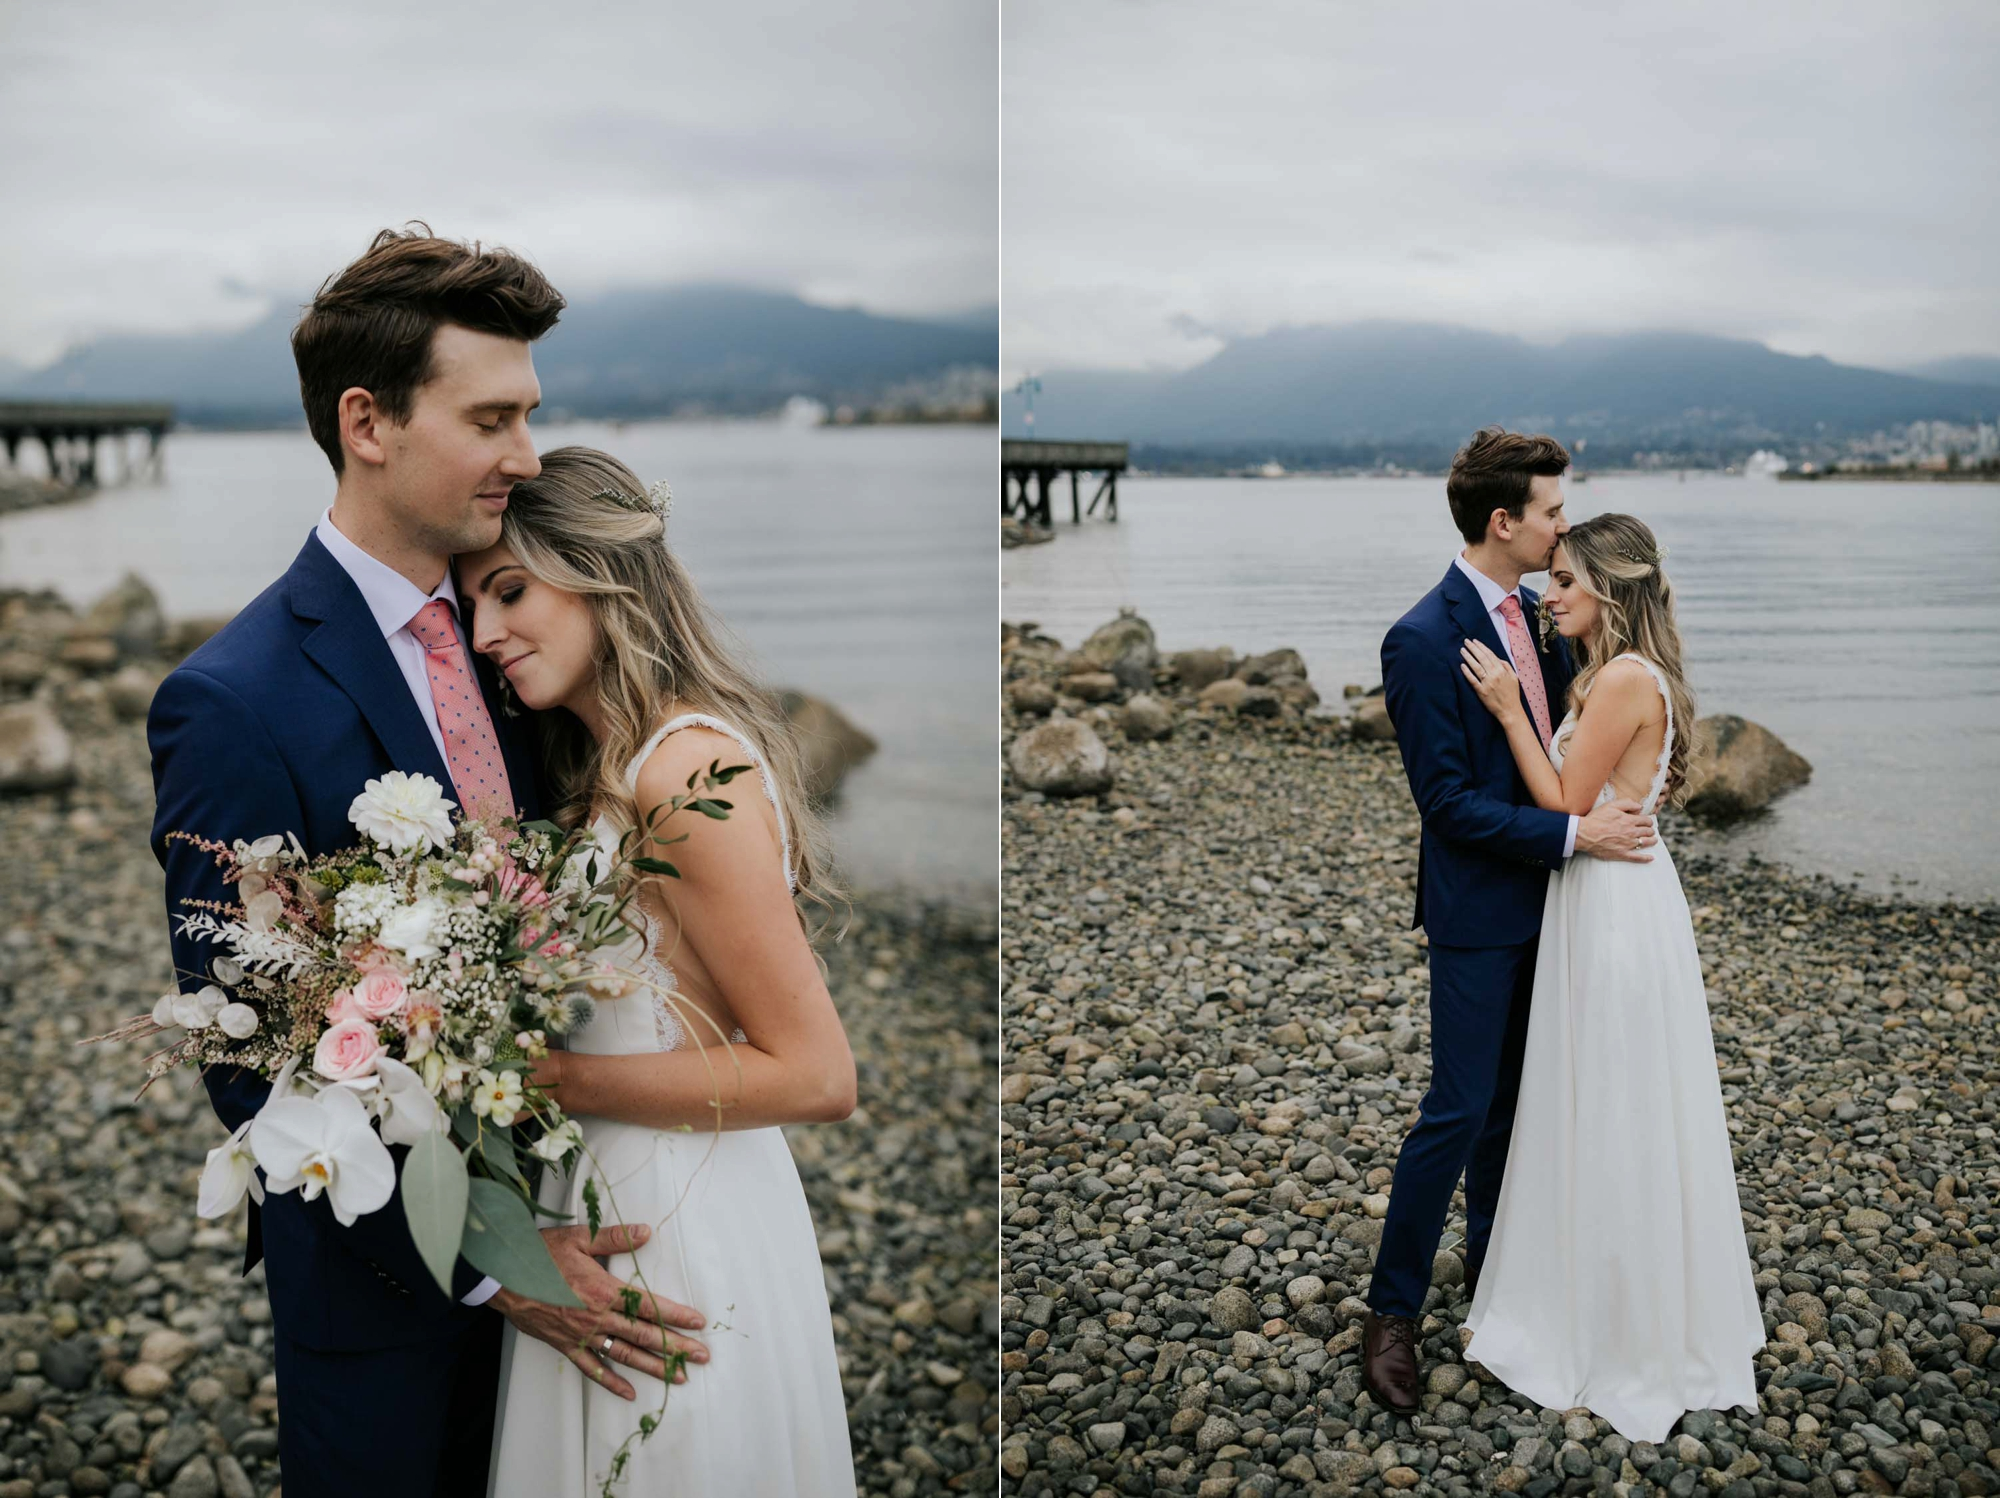 Crab Park, Vancouver BC Wedding Couple Photoshoot on the beach